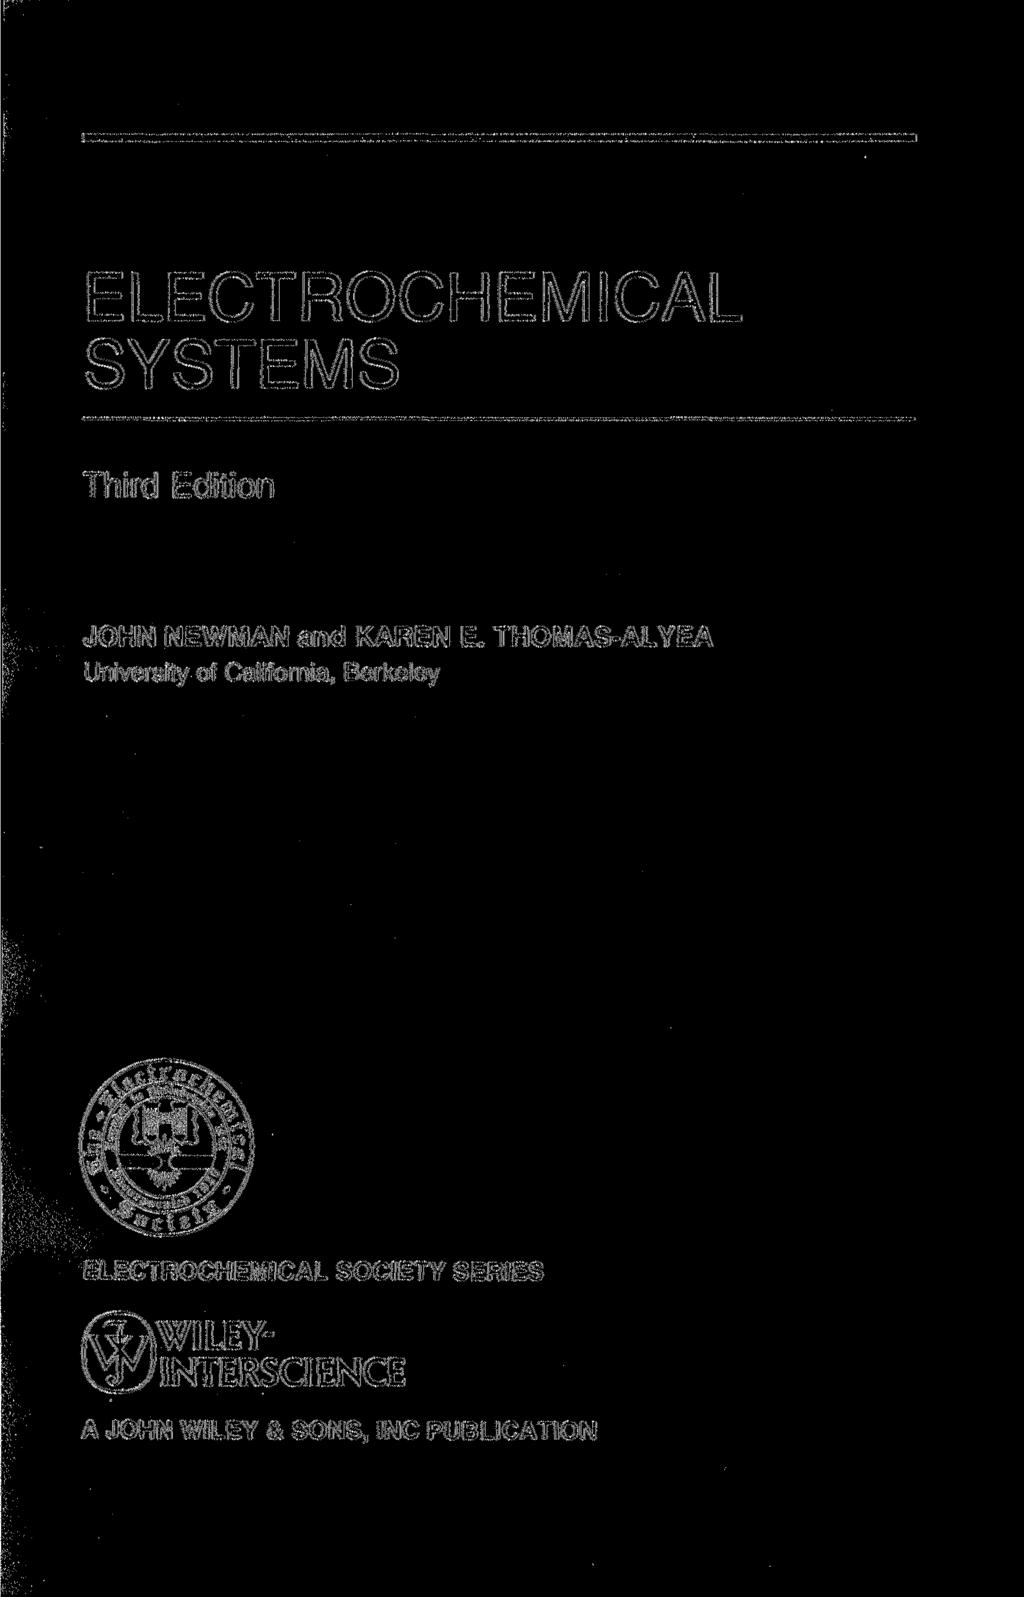 ELECTROCHEMICAL SYSTEMS Third Edition JOHN NEWMAN and KAREN E.